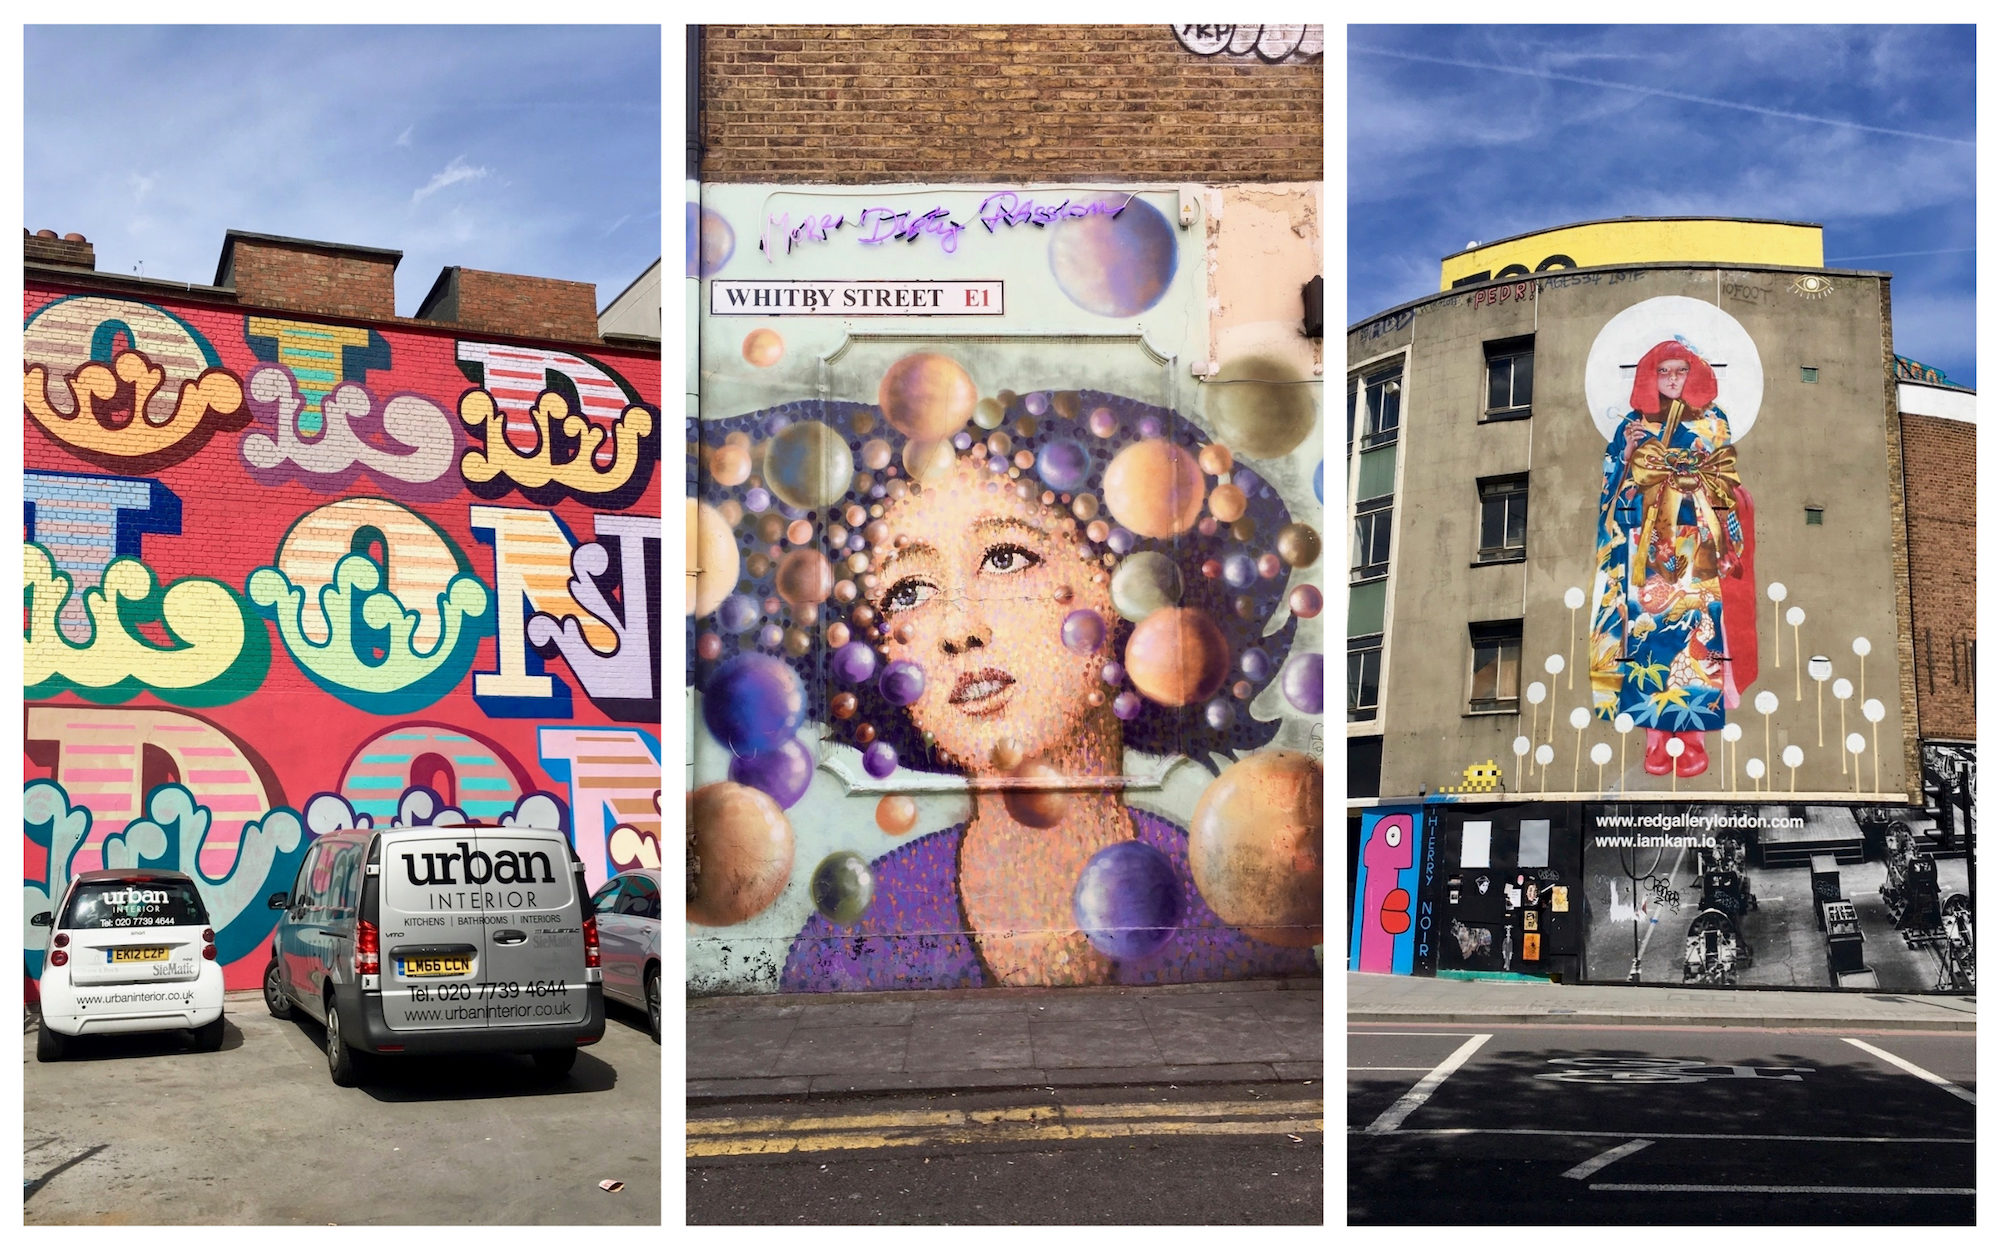 Big colorful streetart frescoes are scattered throughout London in a way that Paris still has to master.